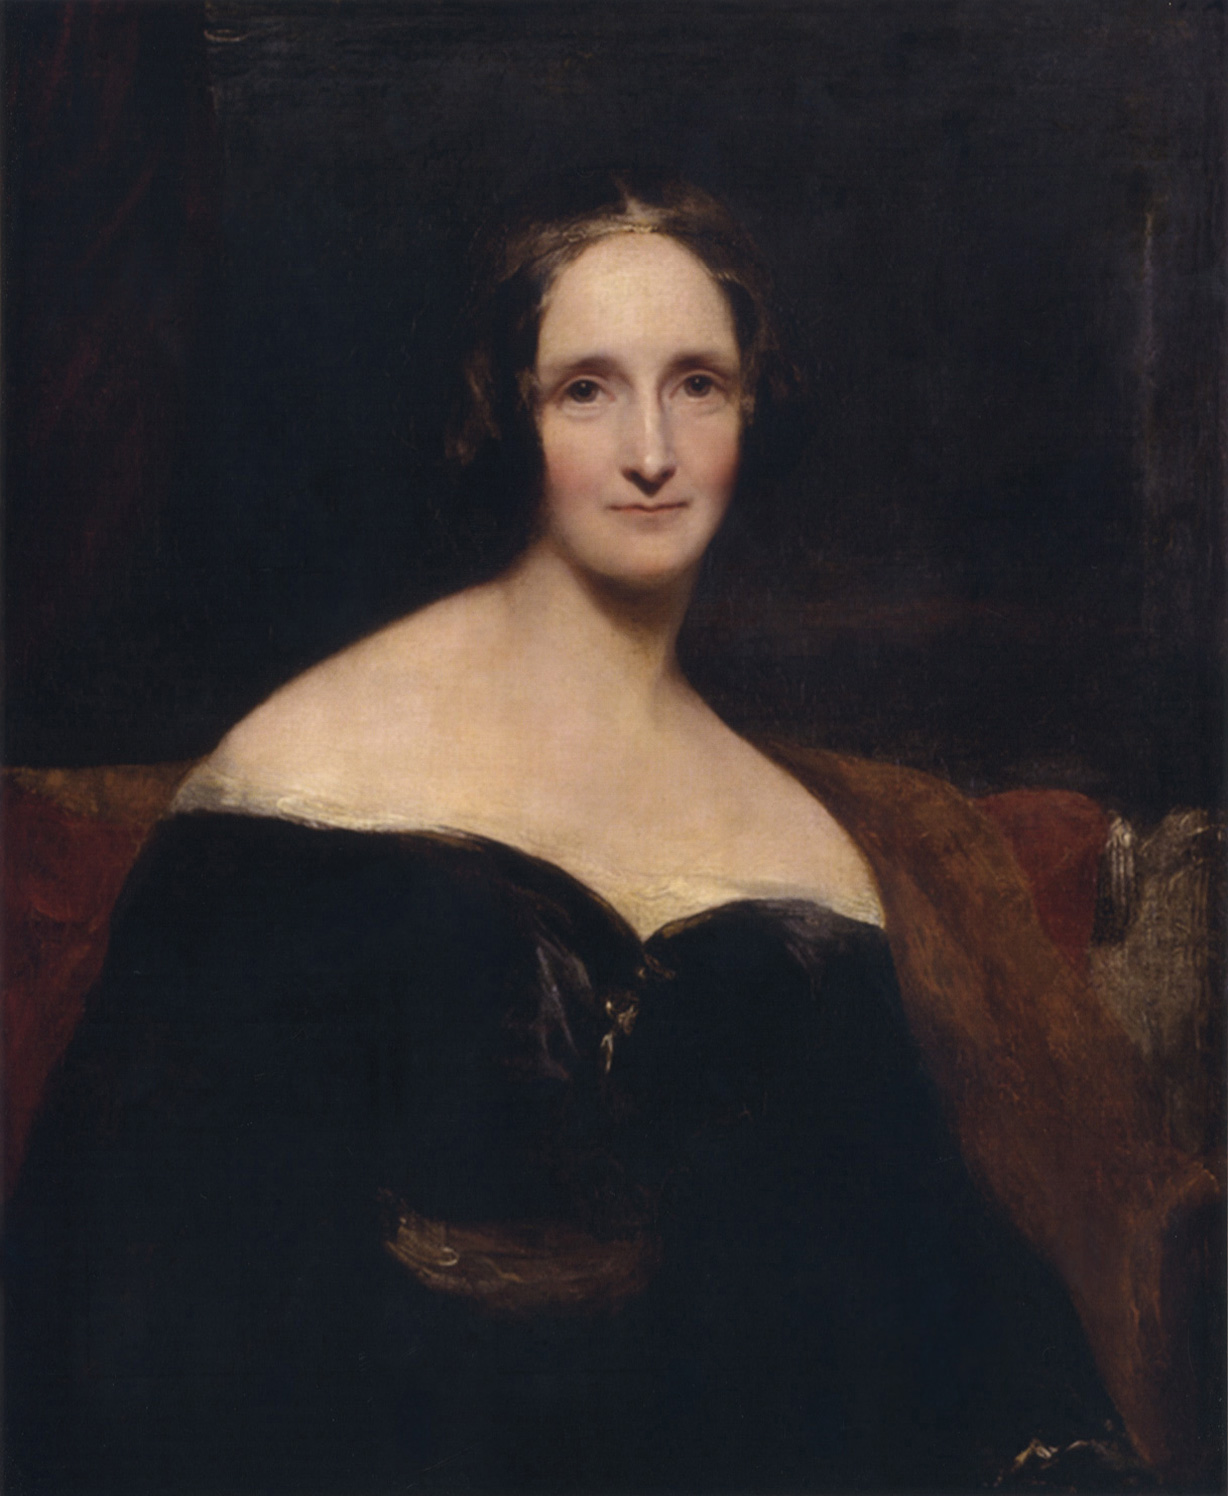 Portrait of Mary Shelley by Richard Rothwell, 1840